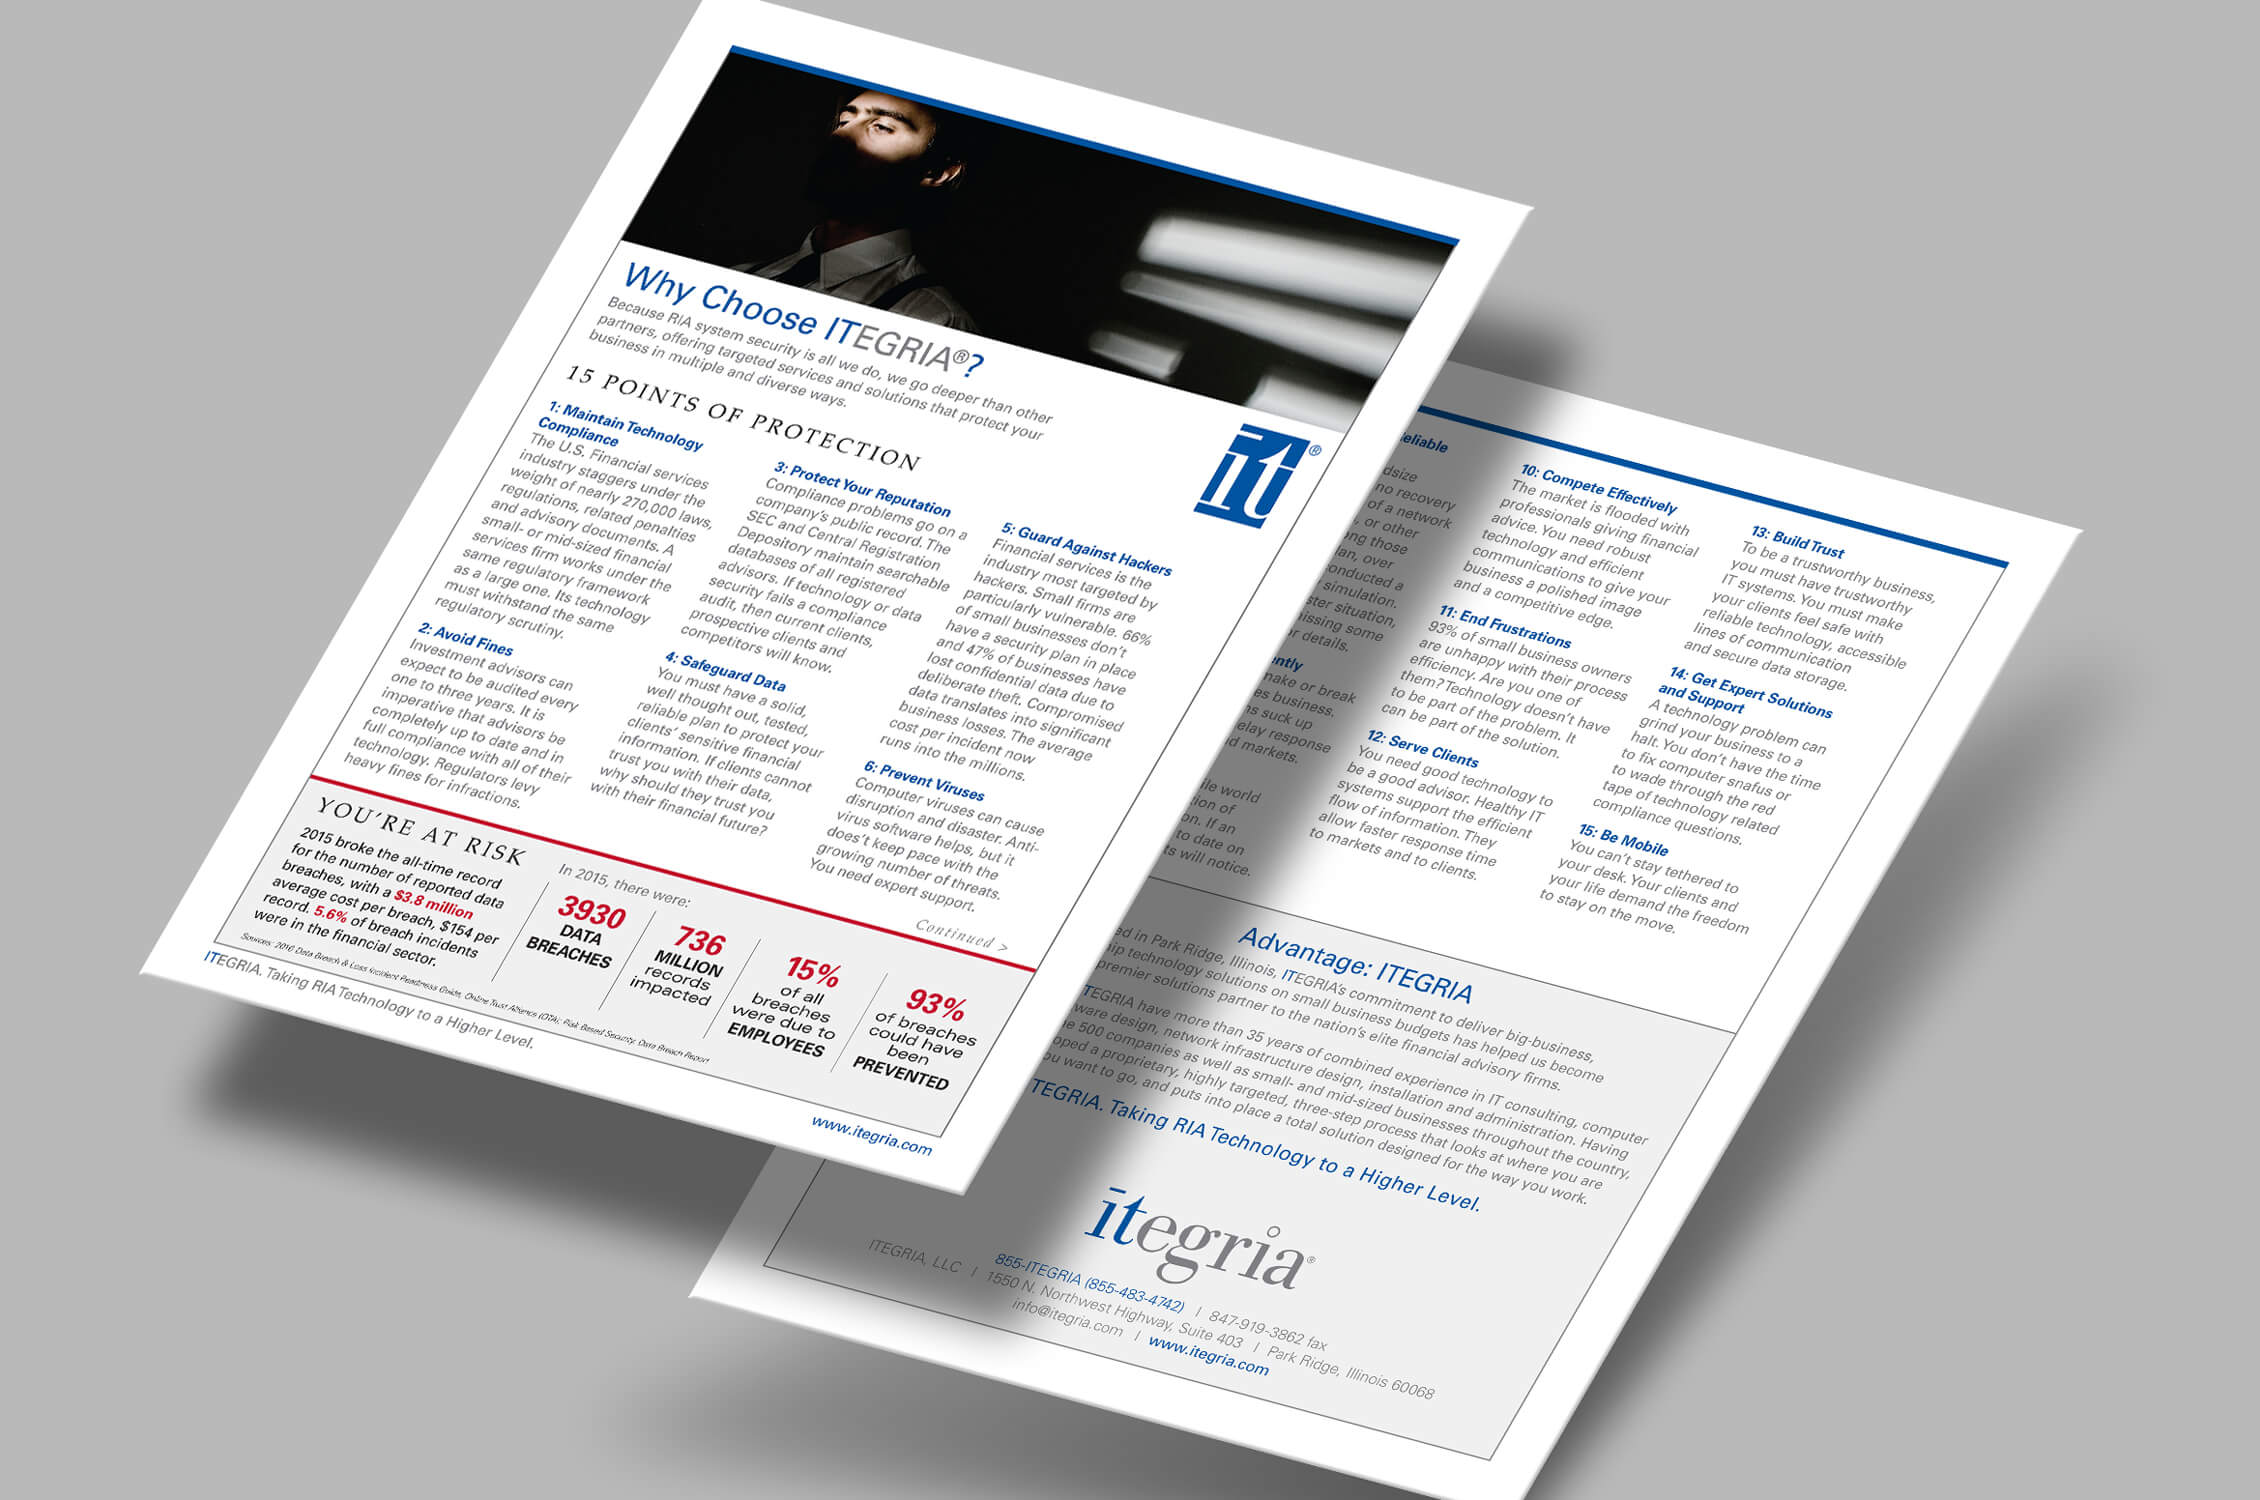 Itegria Why Choose Itegria Brochure